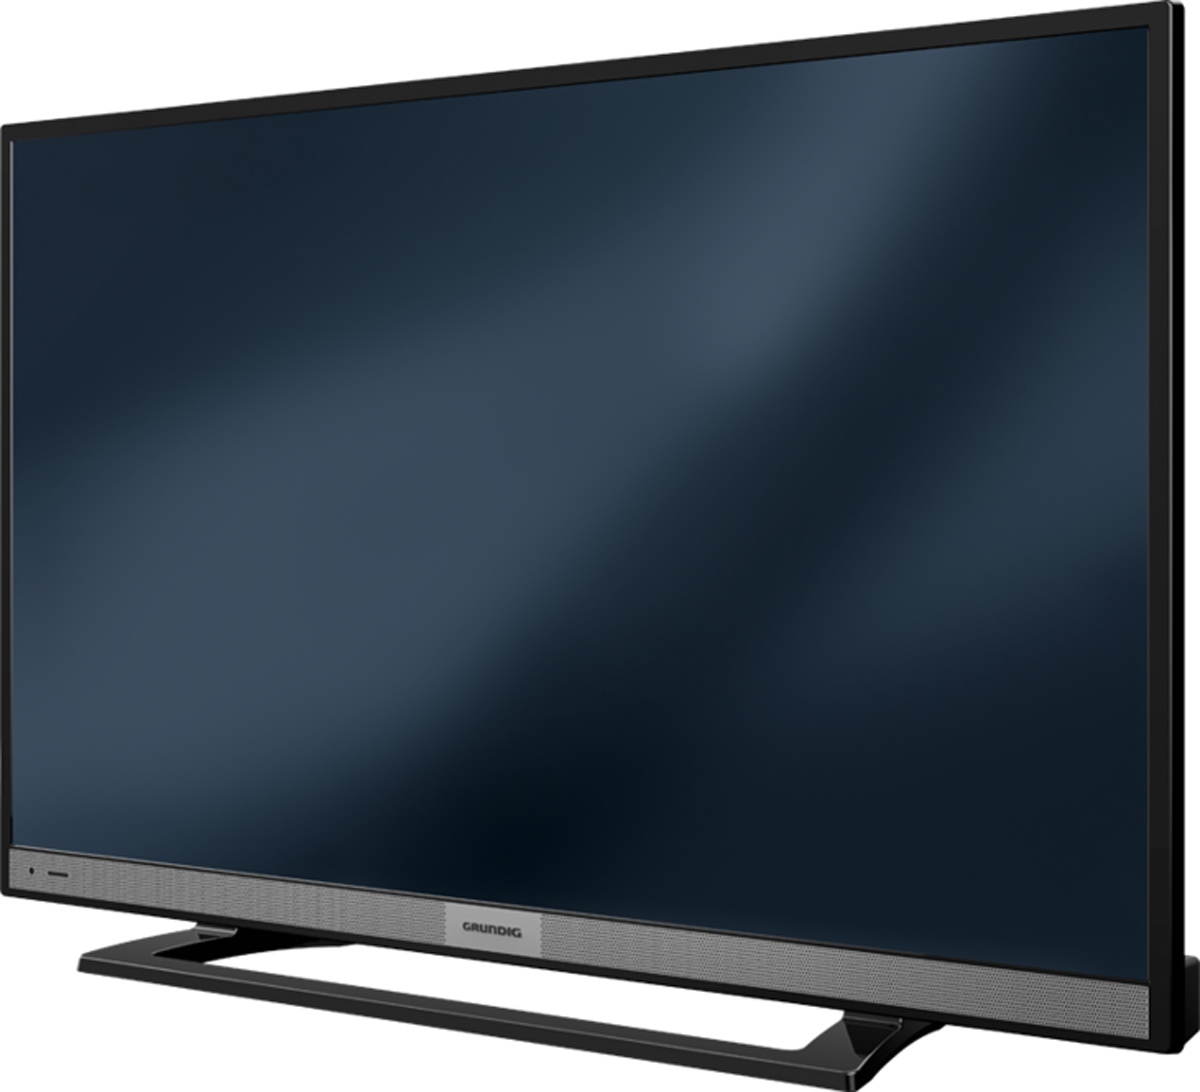 grundig led tv 22 gfb 5620 schwarz 22 zoll 55 cm fernseher triple tuner ebay. Black Bedroom Furniture Sets. Home Design Ideas